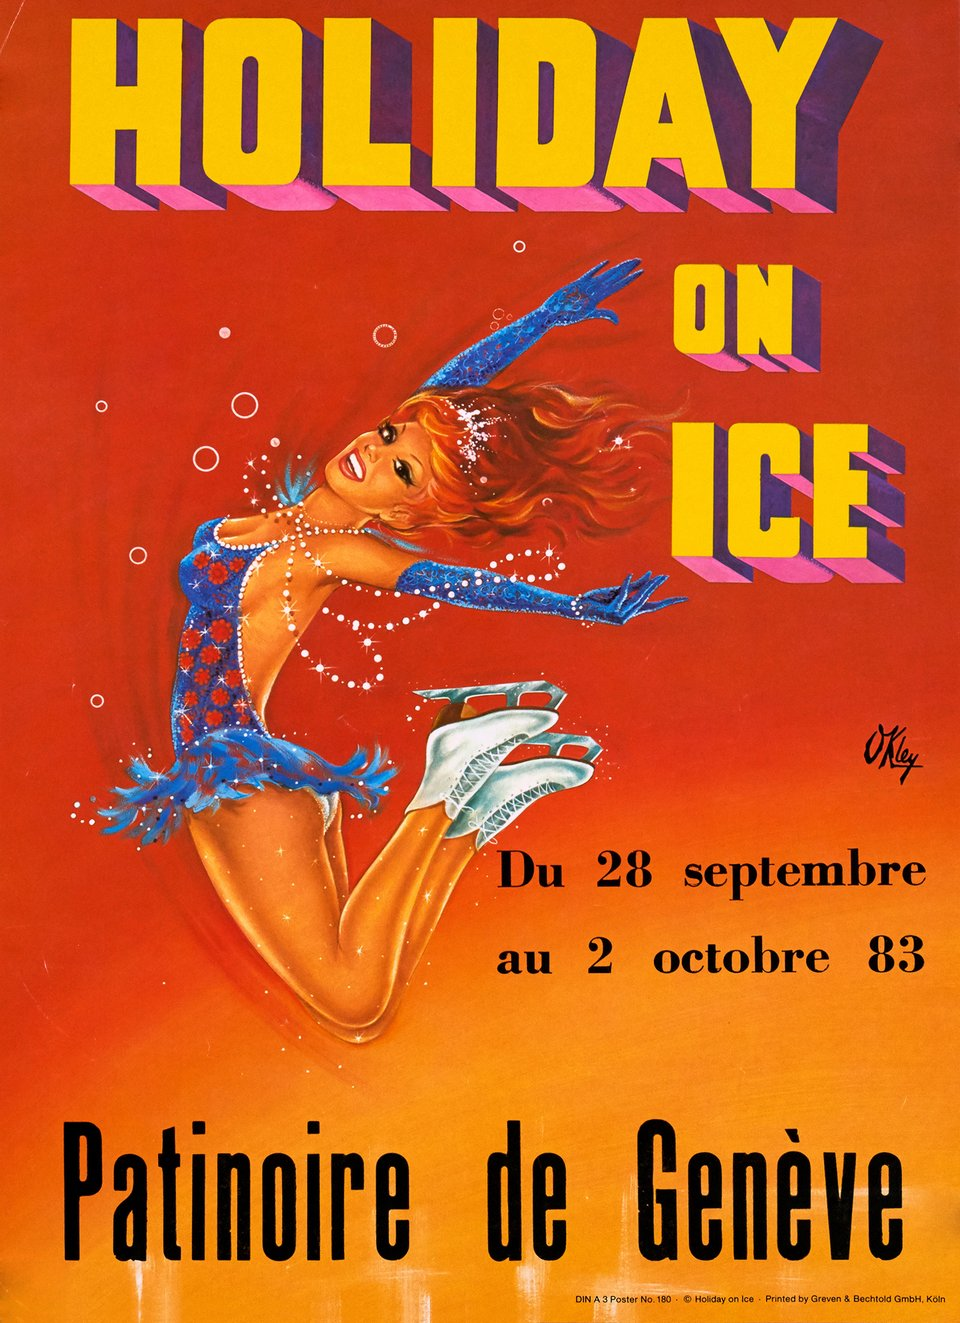 Holiday on Ice, Patinoire de Genève – Affiche ancienne – O'KLEY – 1983